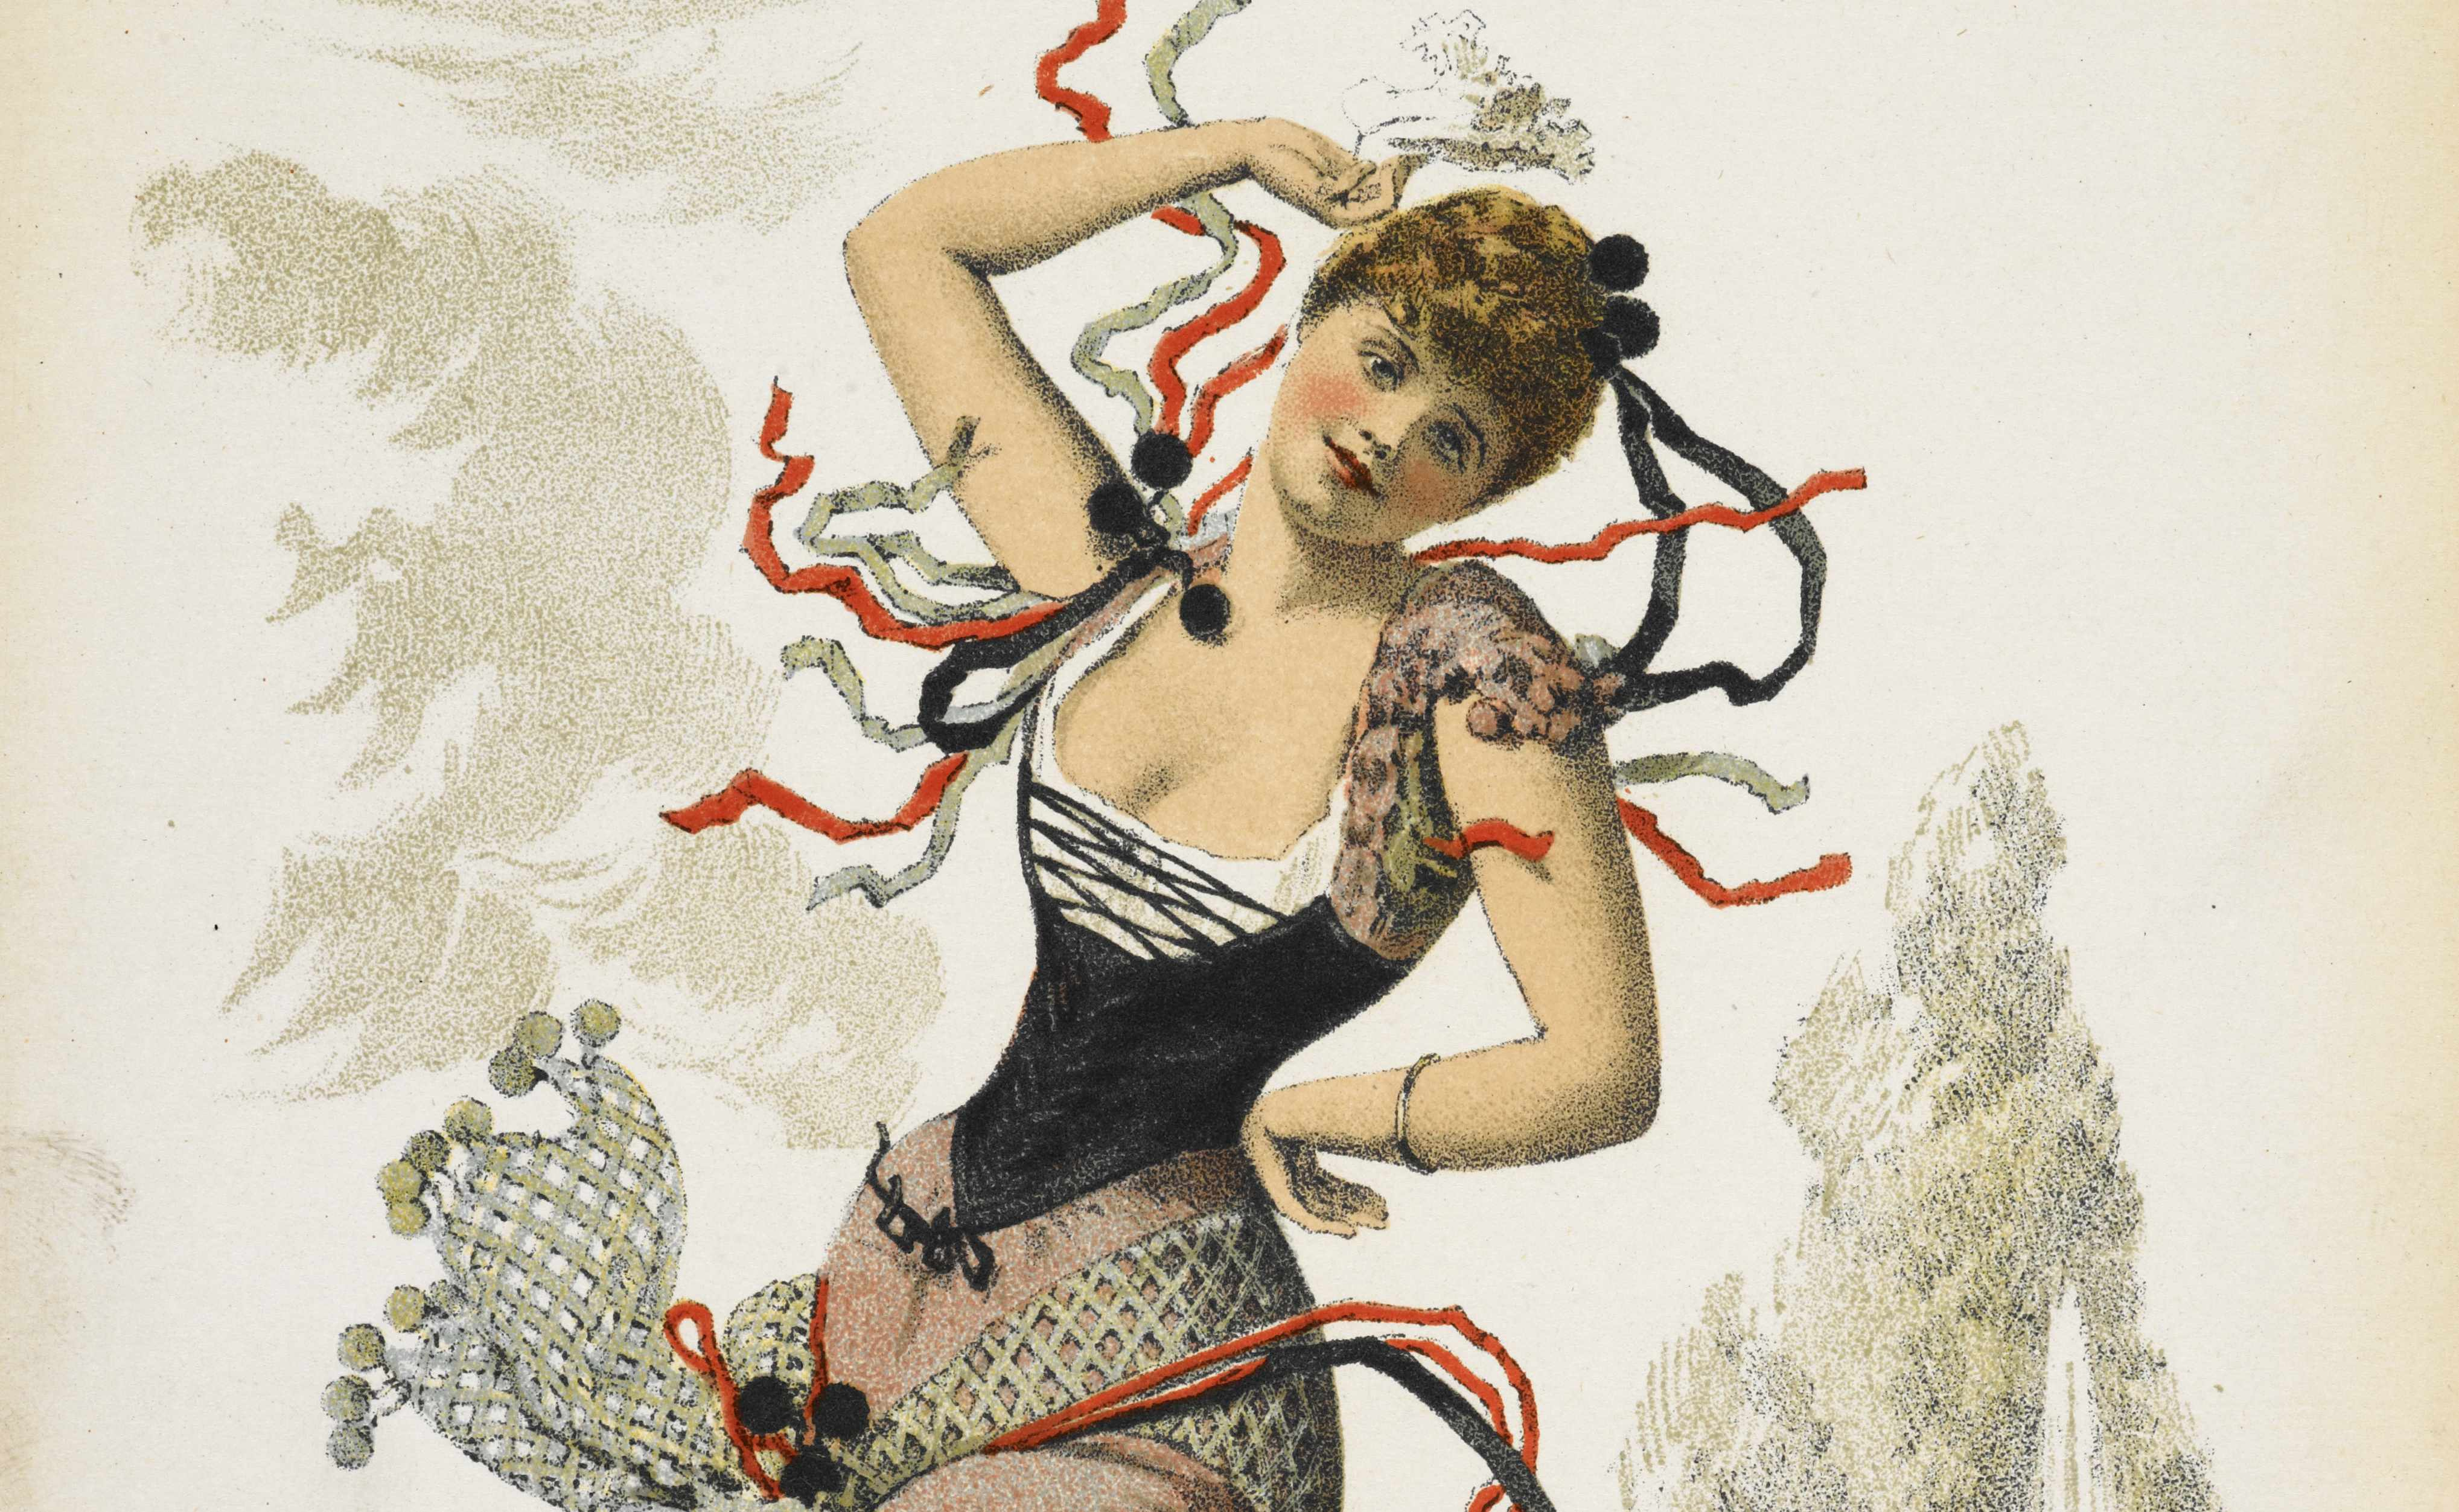 A souvenir for a burlesque adaptation of the classic opera 'Carmen' at the Gaiety Theatre, 1890. (Image by Bridgeman)